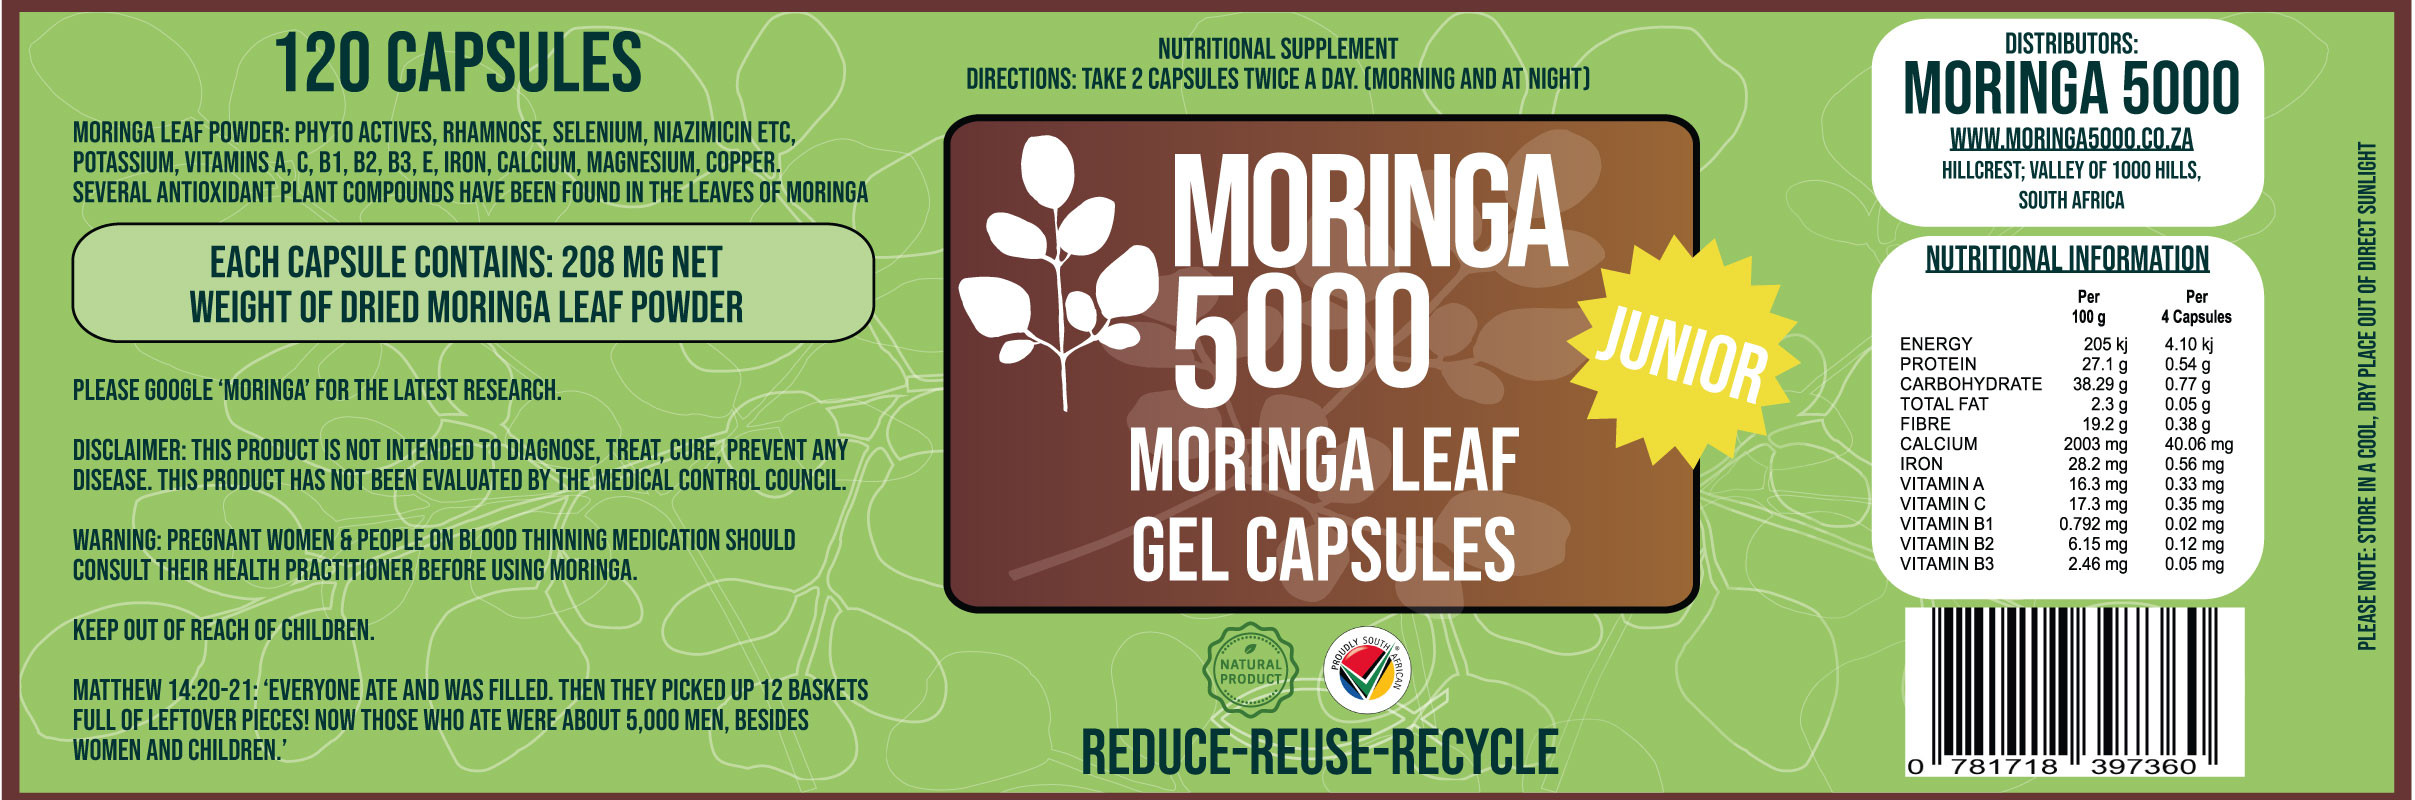 Moringa-5000-Junior-Gel-Capsules.jpg